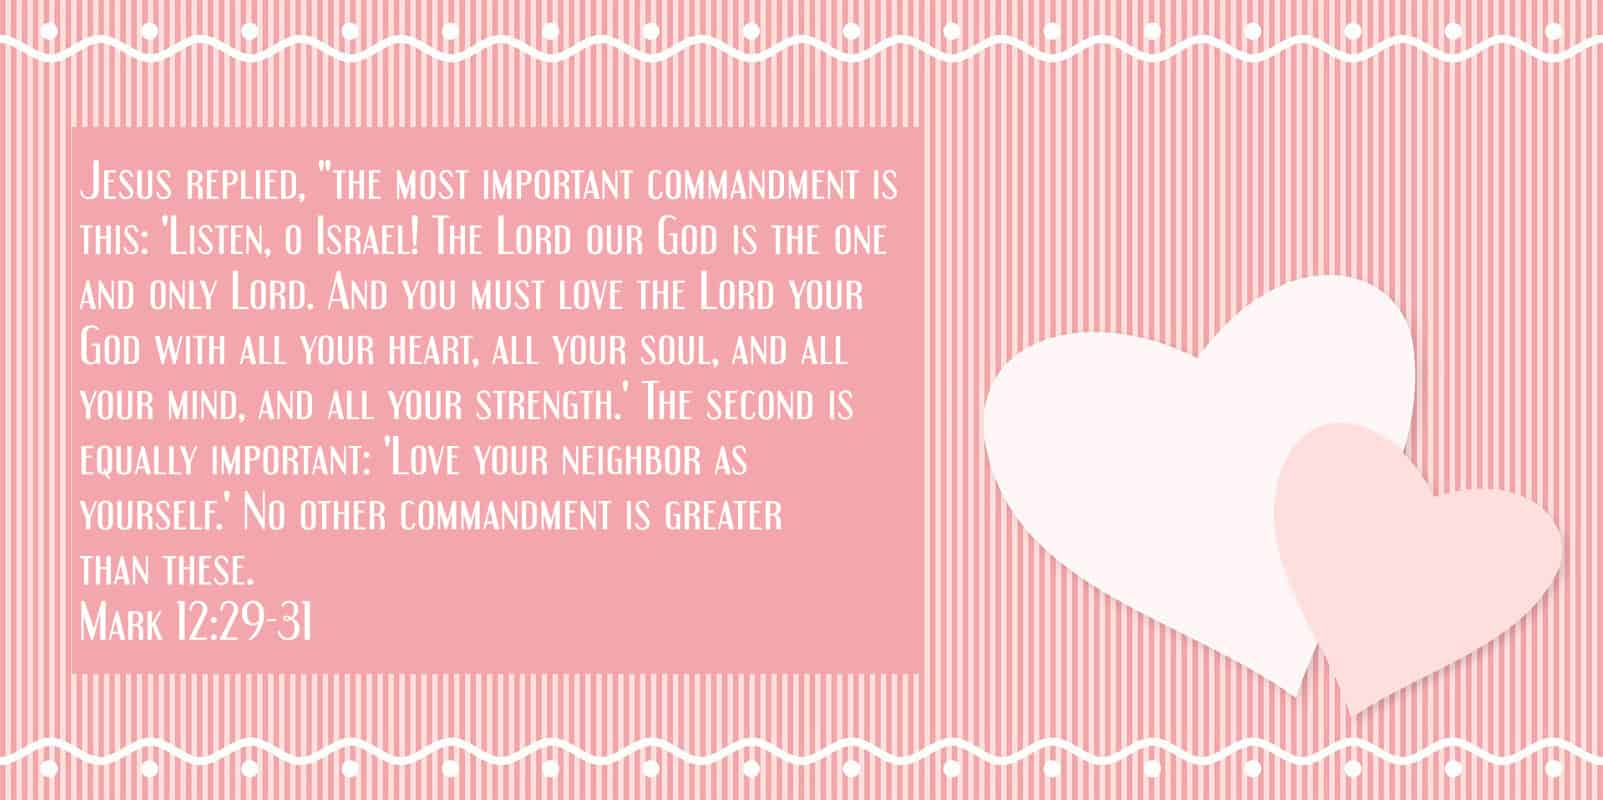 """Jesus replied, """"the most important commandment is this: 'Listen, o Israel! The Lord our God is the one and only Lord. And you must love the Lord your God with all your heart, all your soul, and all your mind, and all your strength.' The second is equally important: 'Love your neighbor as yourself.' No other commandment is greater than these. Mark 12:29-31"""